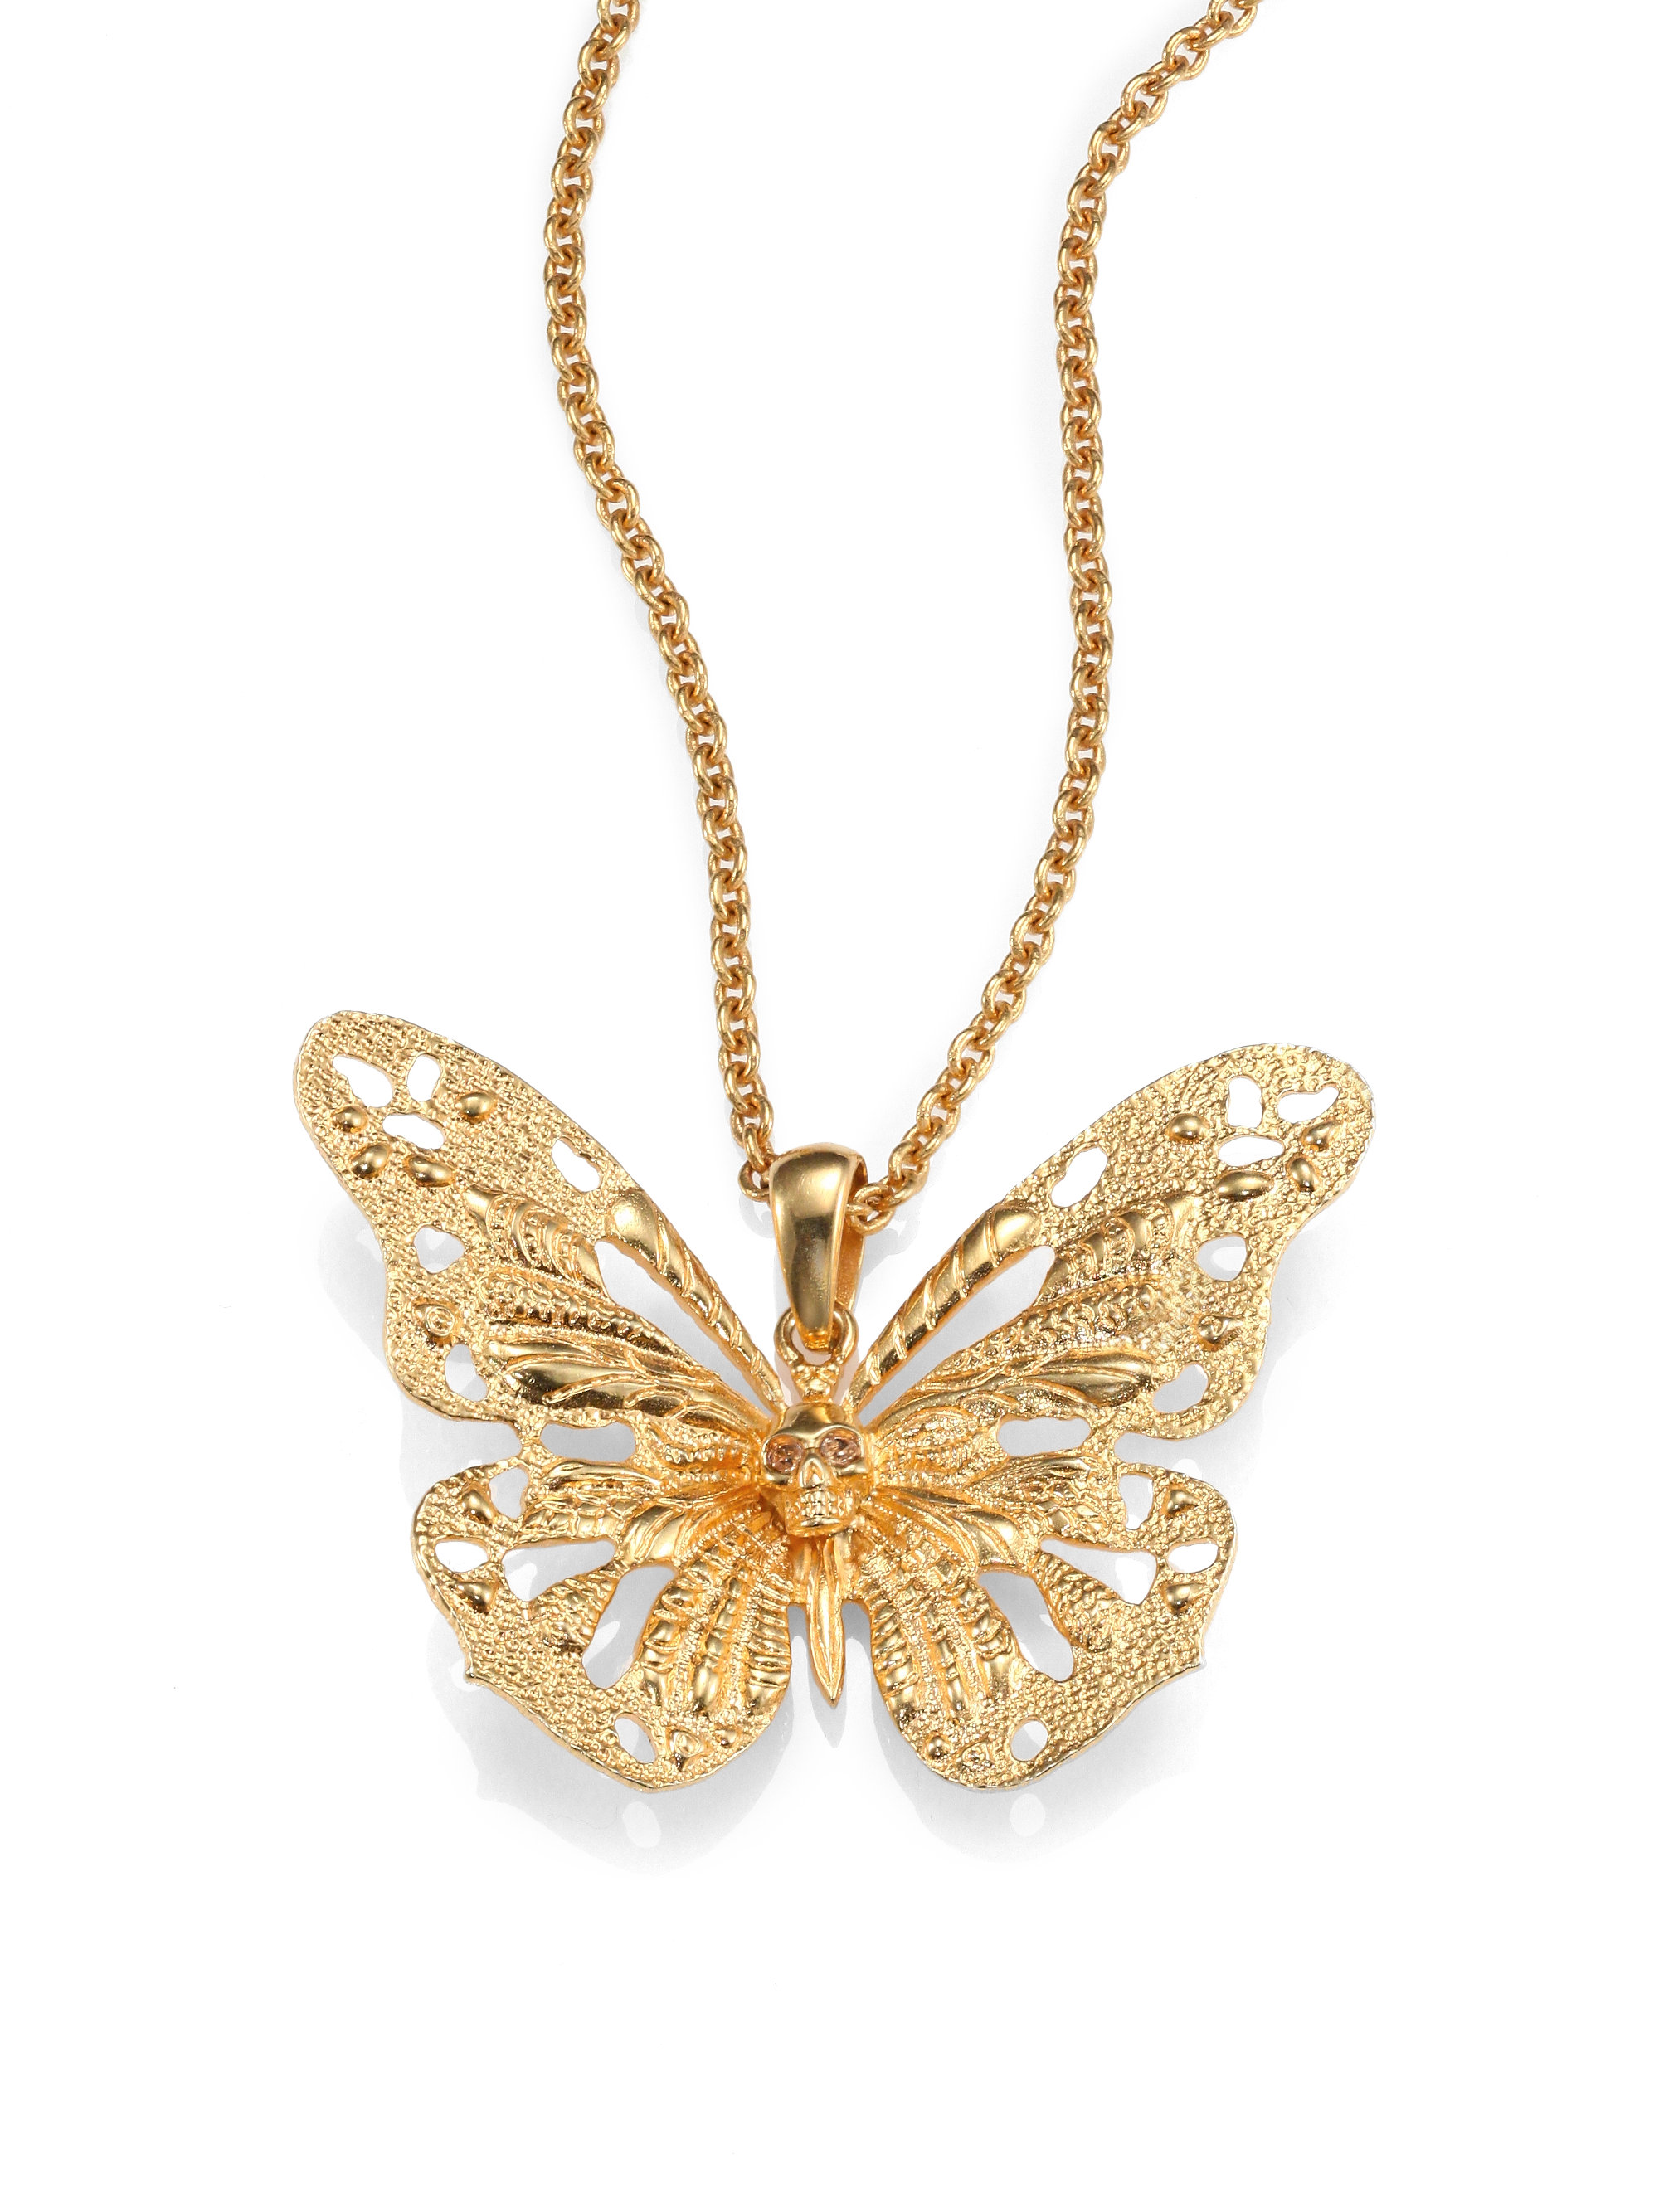 Usa jewelry stores database jewelers database for Jewelry stores in usa